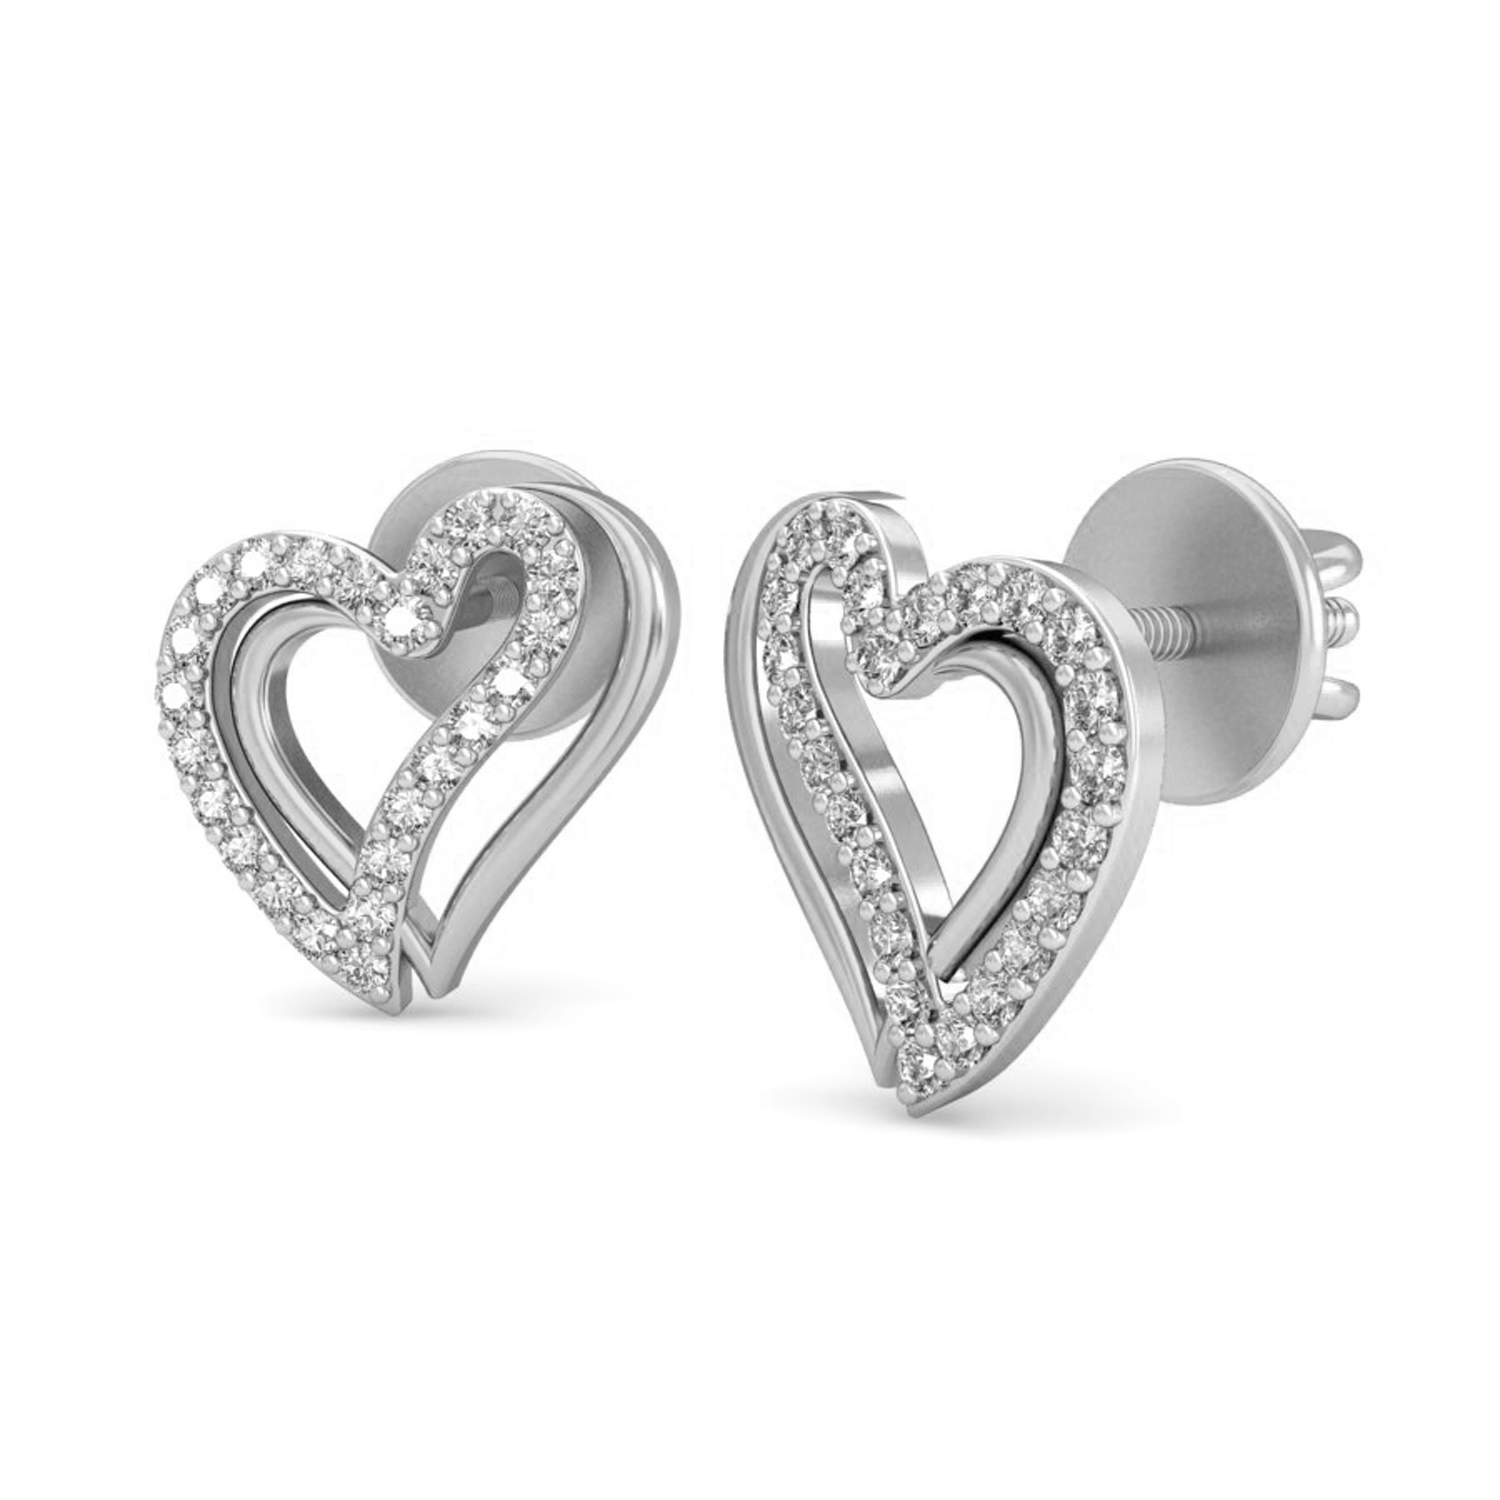 property heart diamond earrings accents with of room pair silver l shaped sterling